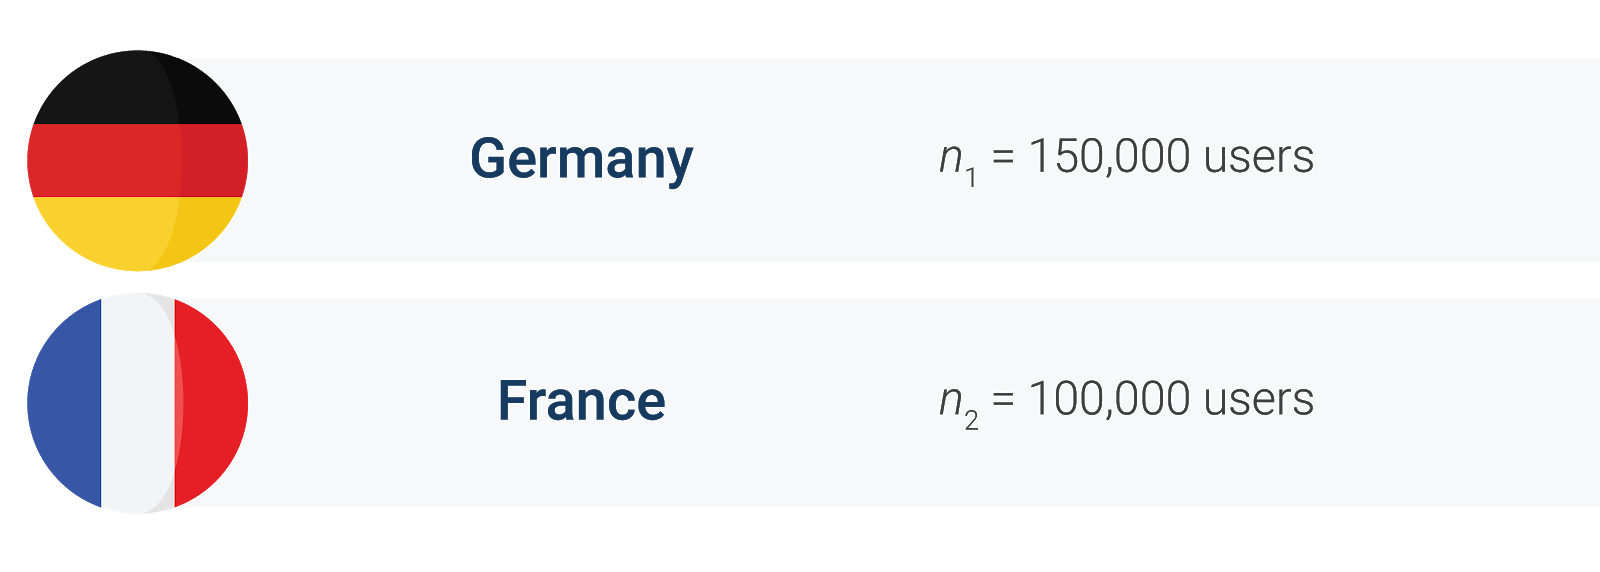 Number of users in Germany vs. France